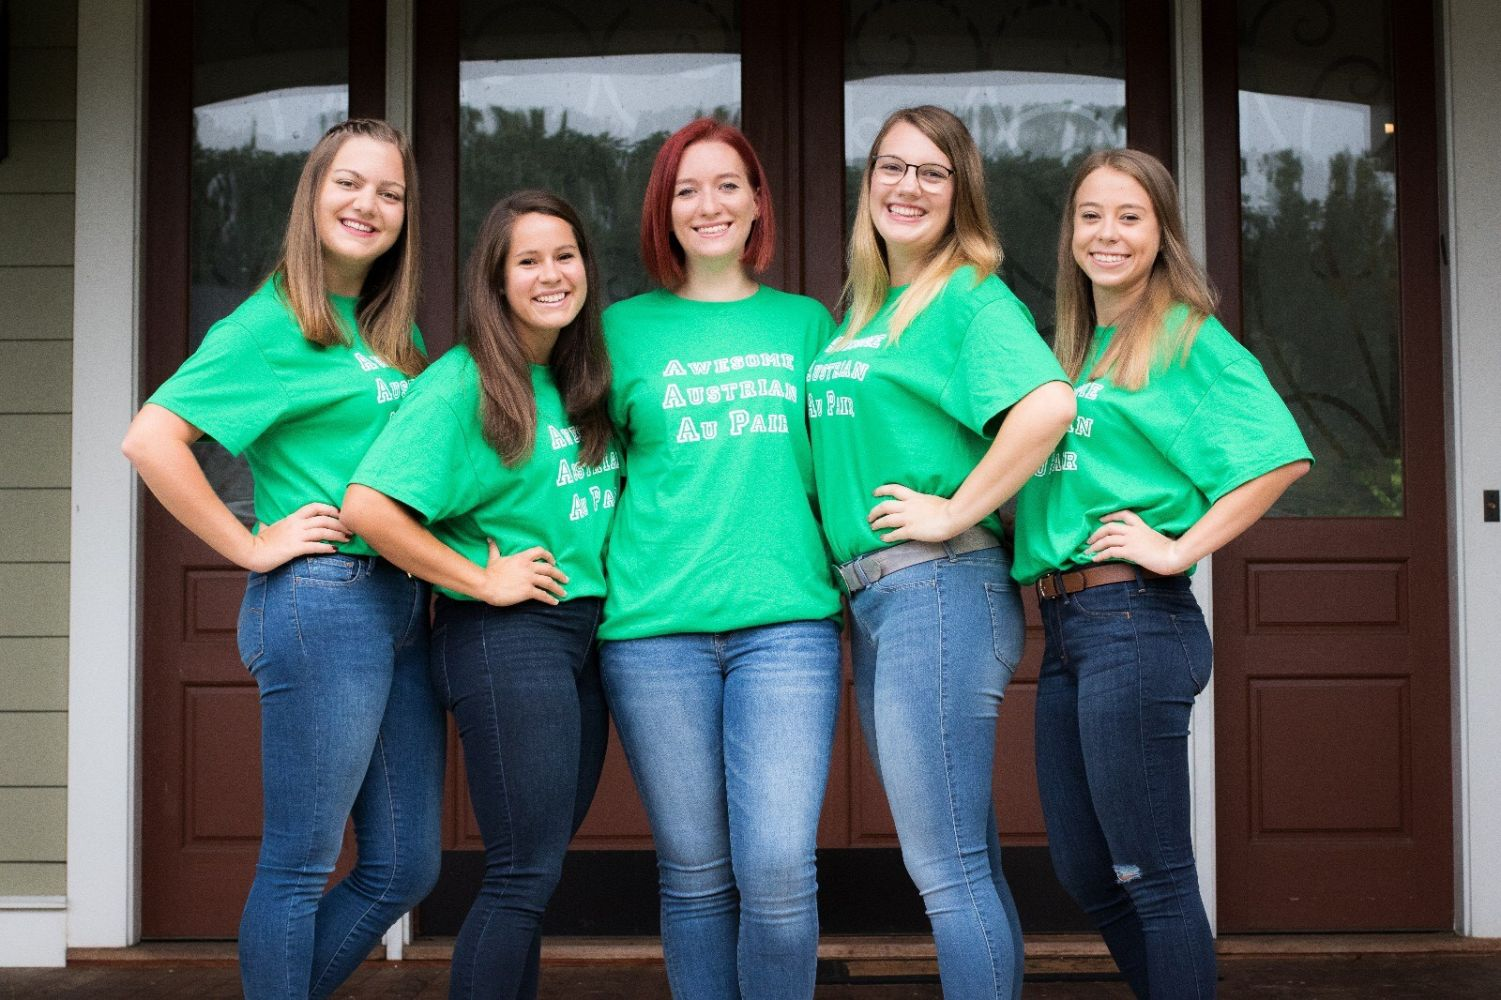 5 Austrian Au Pairs Reunite with Host Family